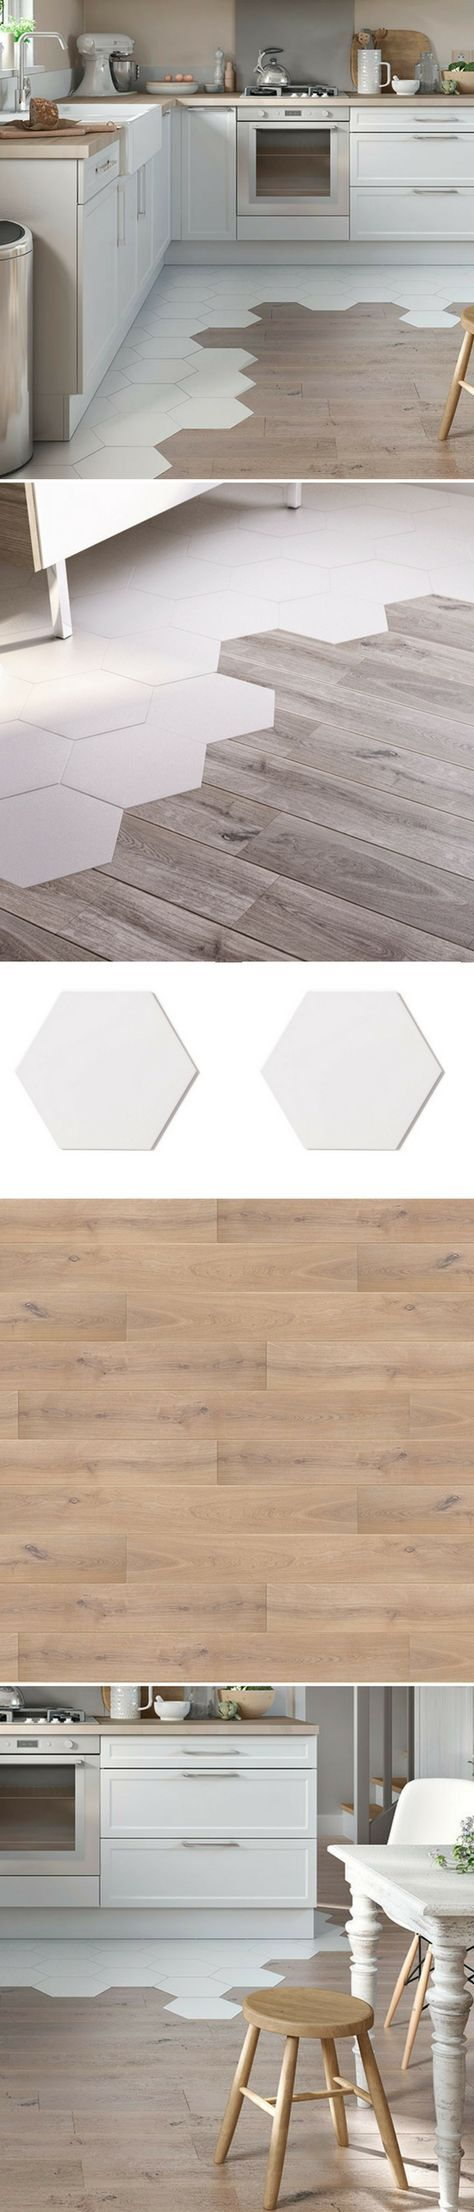 Tendance sol cuisine : le mix parquet / carrelage http://tracking.publicidees.com/clic.php?progid=2221&partid=48172&dpl=https%3A%2F%2Fwww.gifi.fr%2Fcuisine-art-de-la-table%2Fart-de-la-table.html